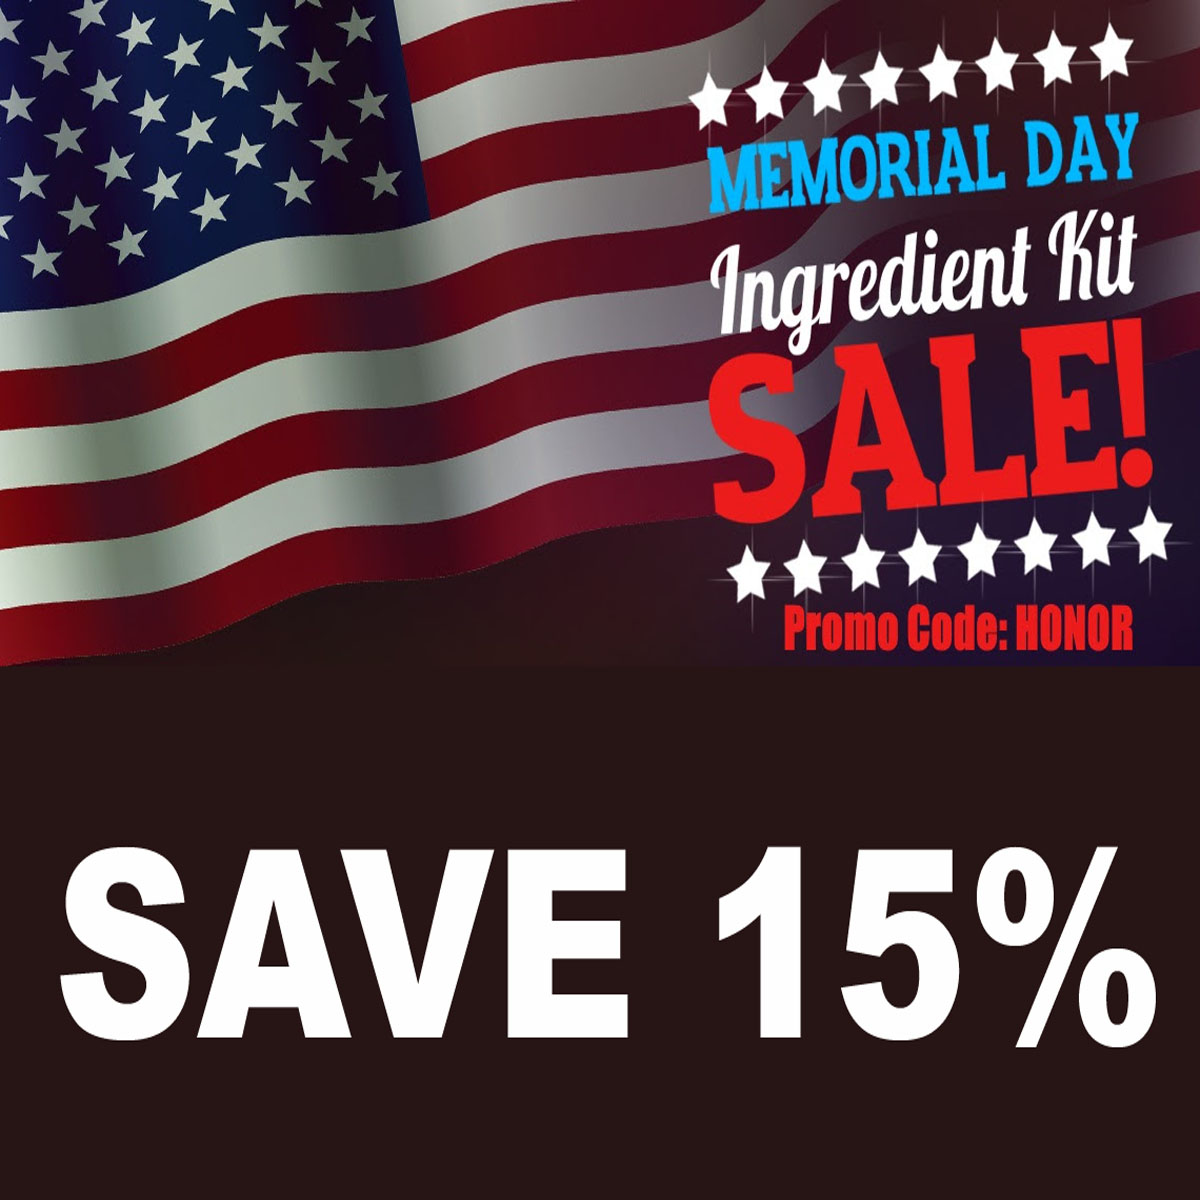 Home Brewer Promo Code for Save 15% On American Style Beer Kits at More Beer! Coupon Code